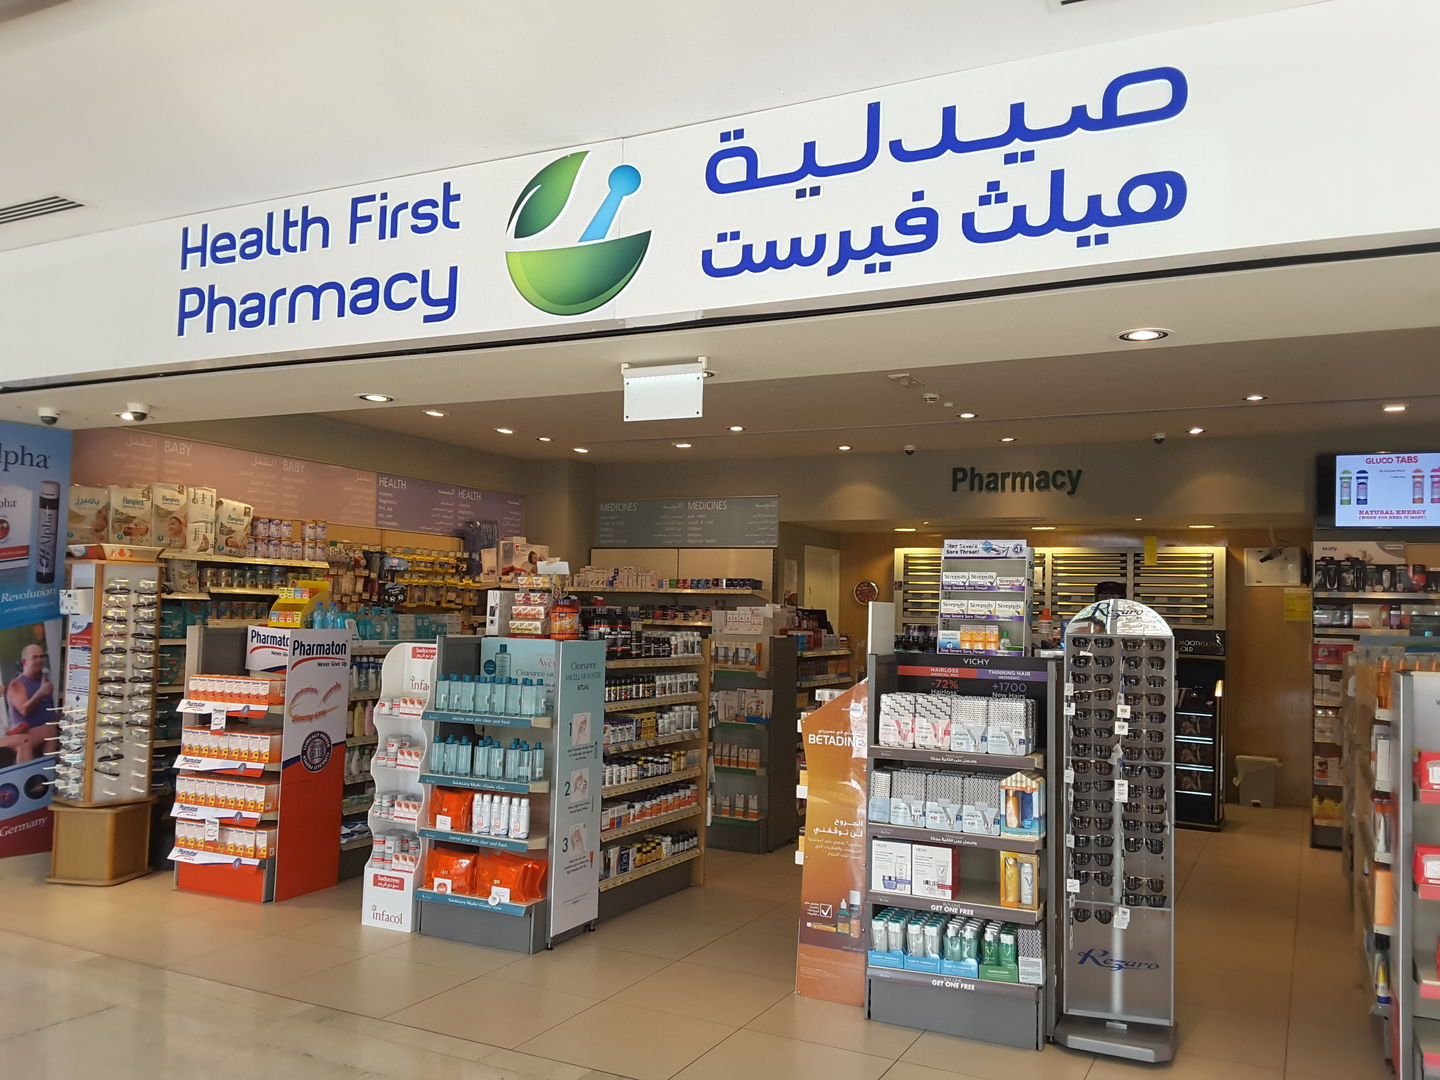 HiDubai-business-health-first-pharmacy-beauty-wellness-health-pharmacy-business-bay-dubai-4